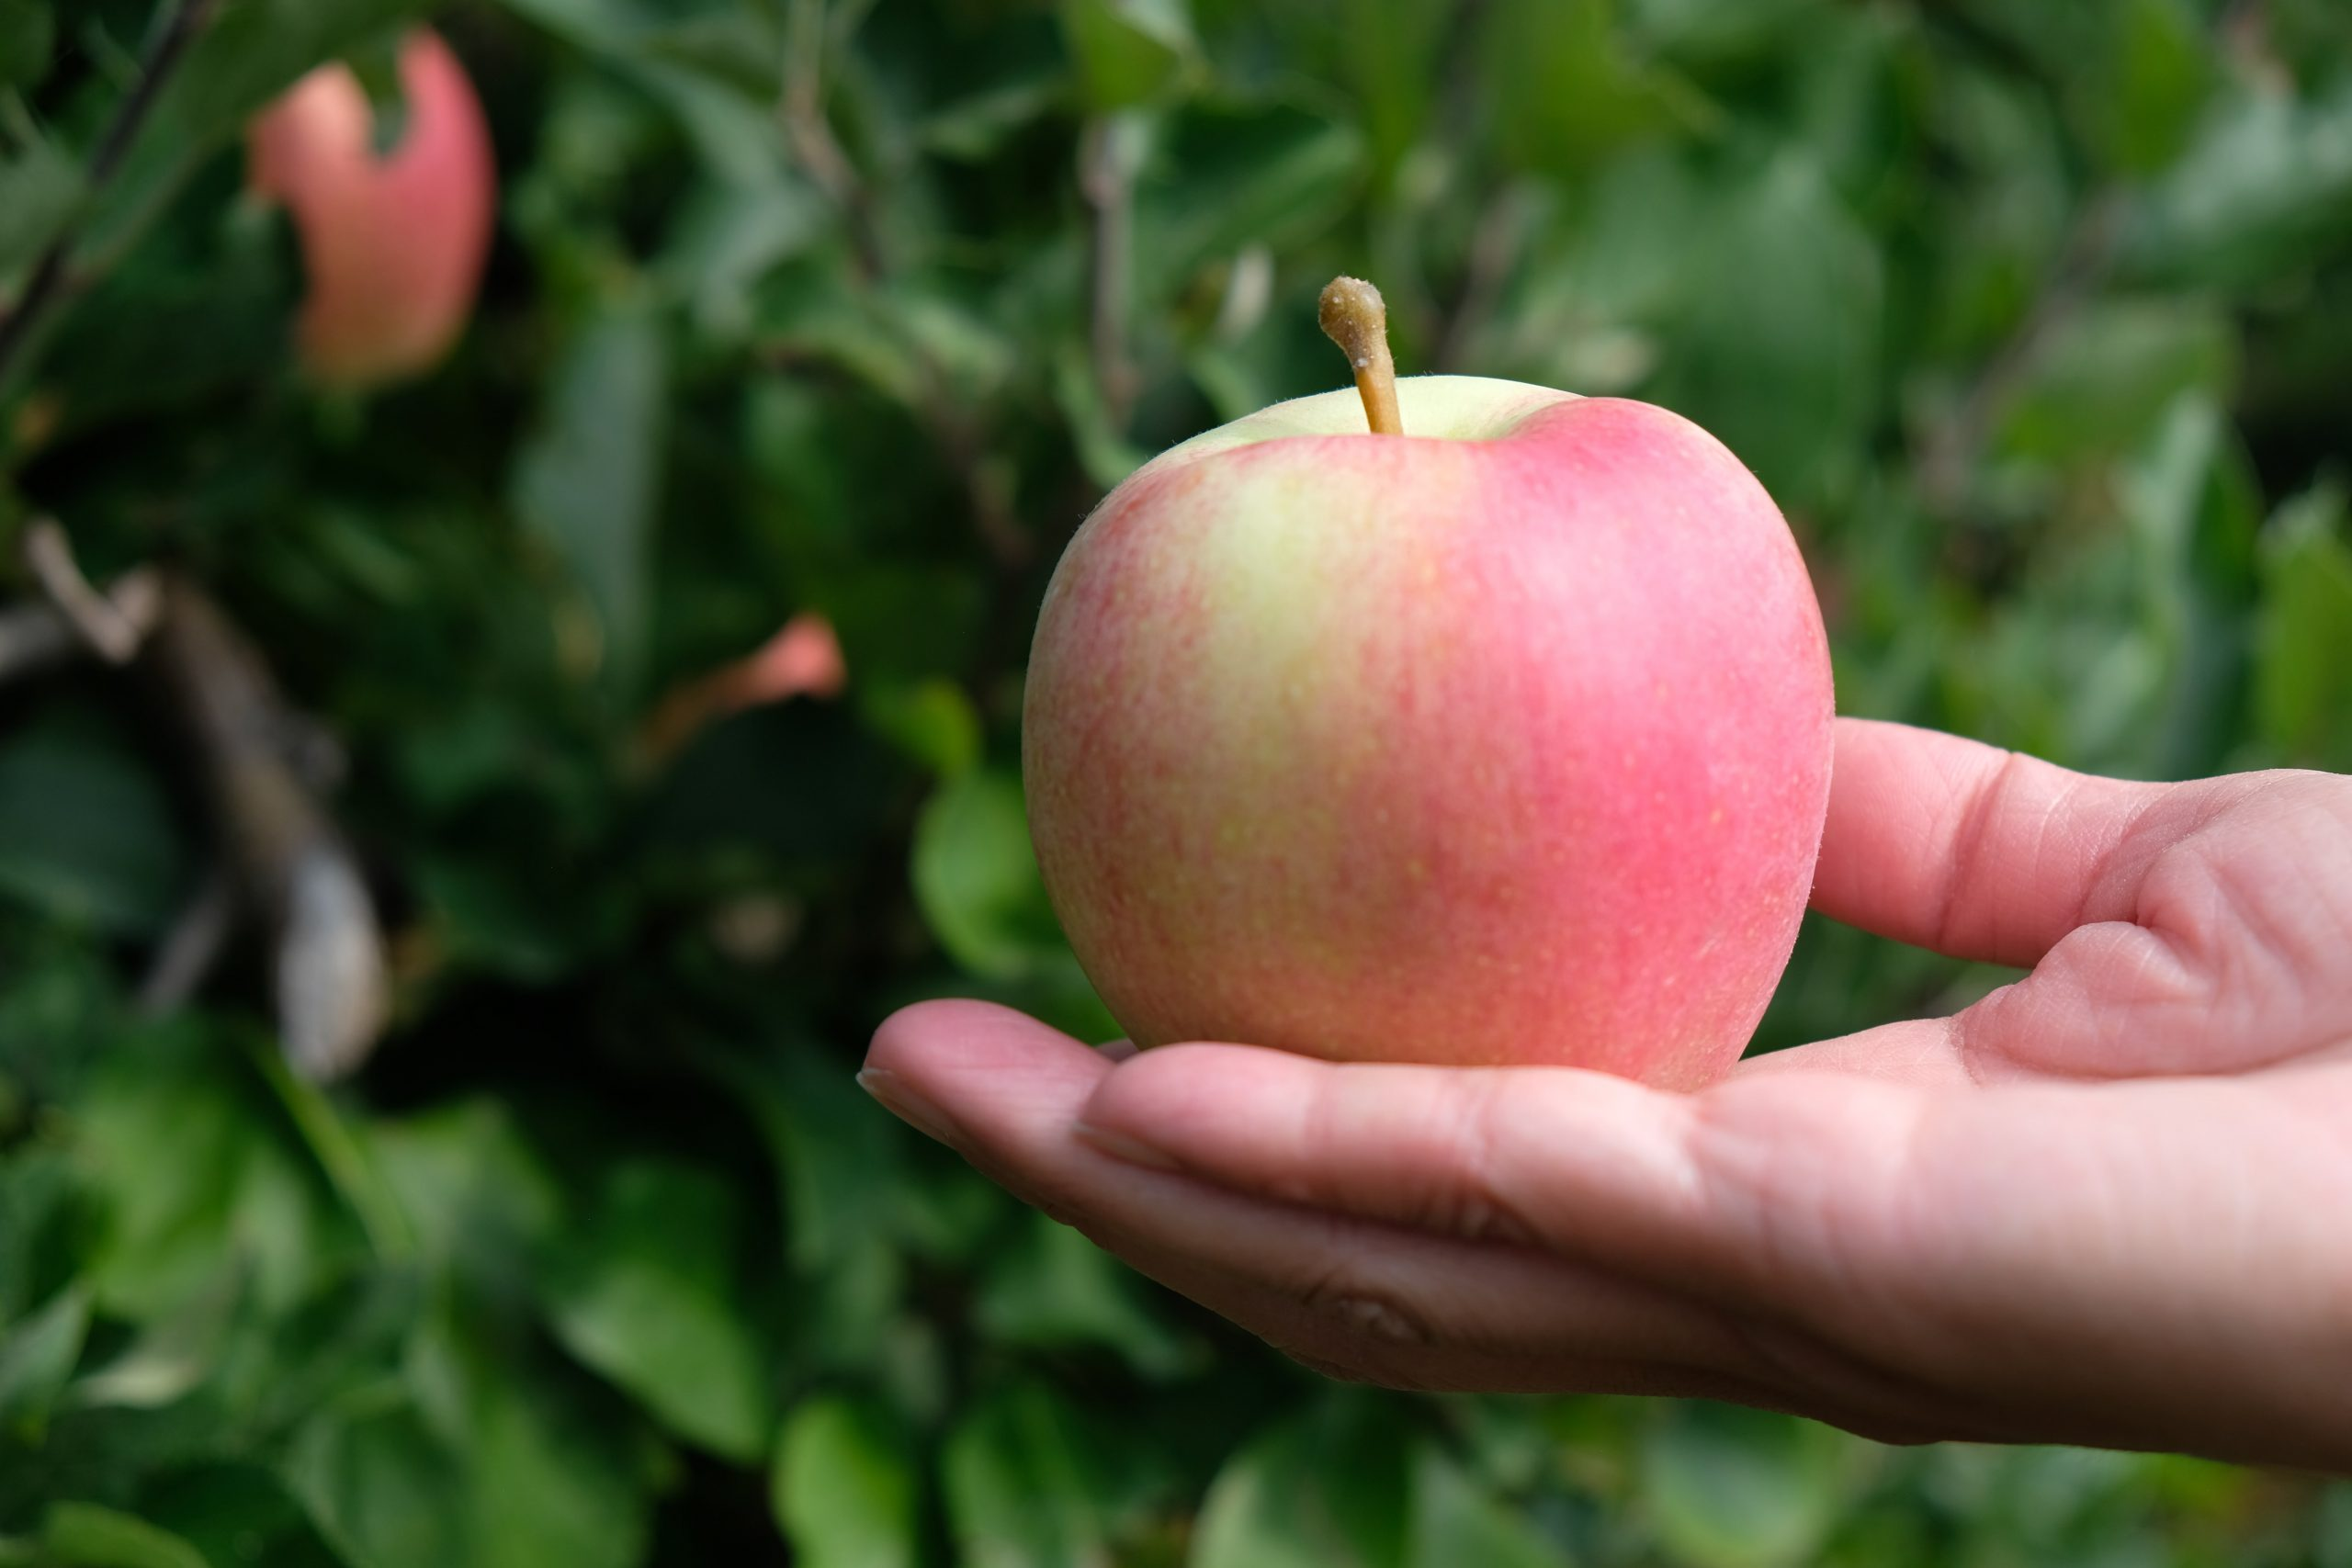 hand holding a pink apple for making apple cider vinegar (ACV)